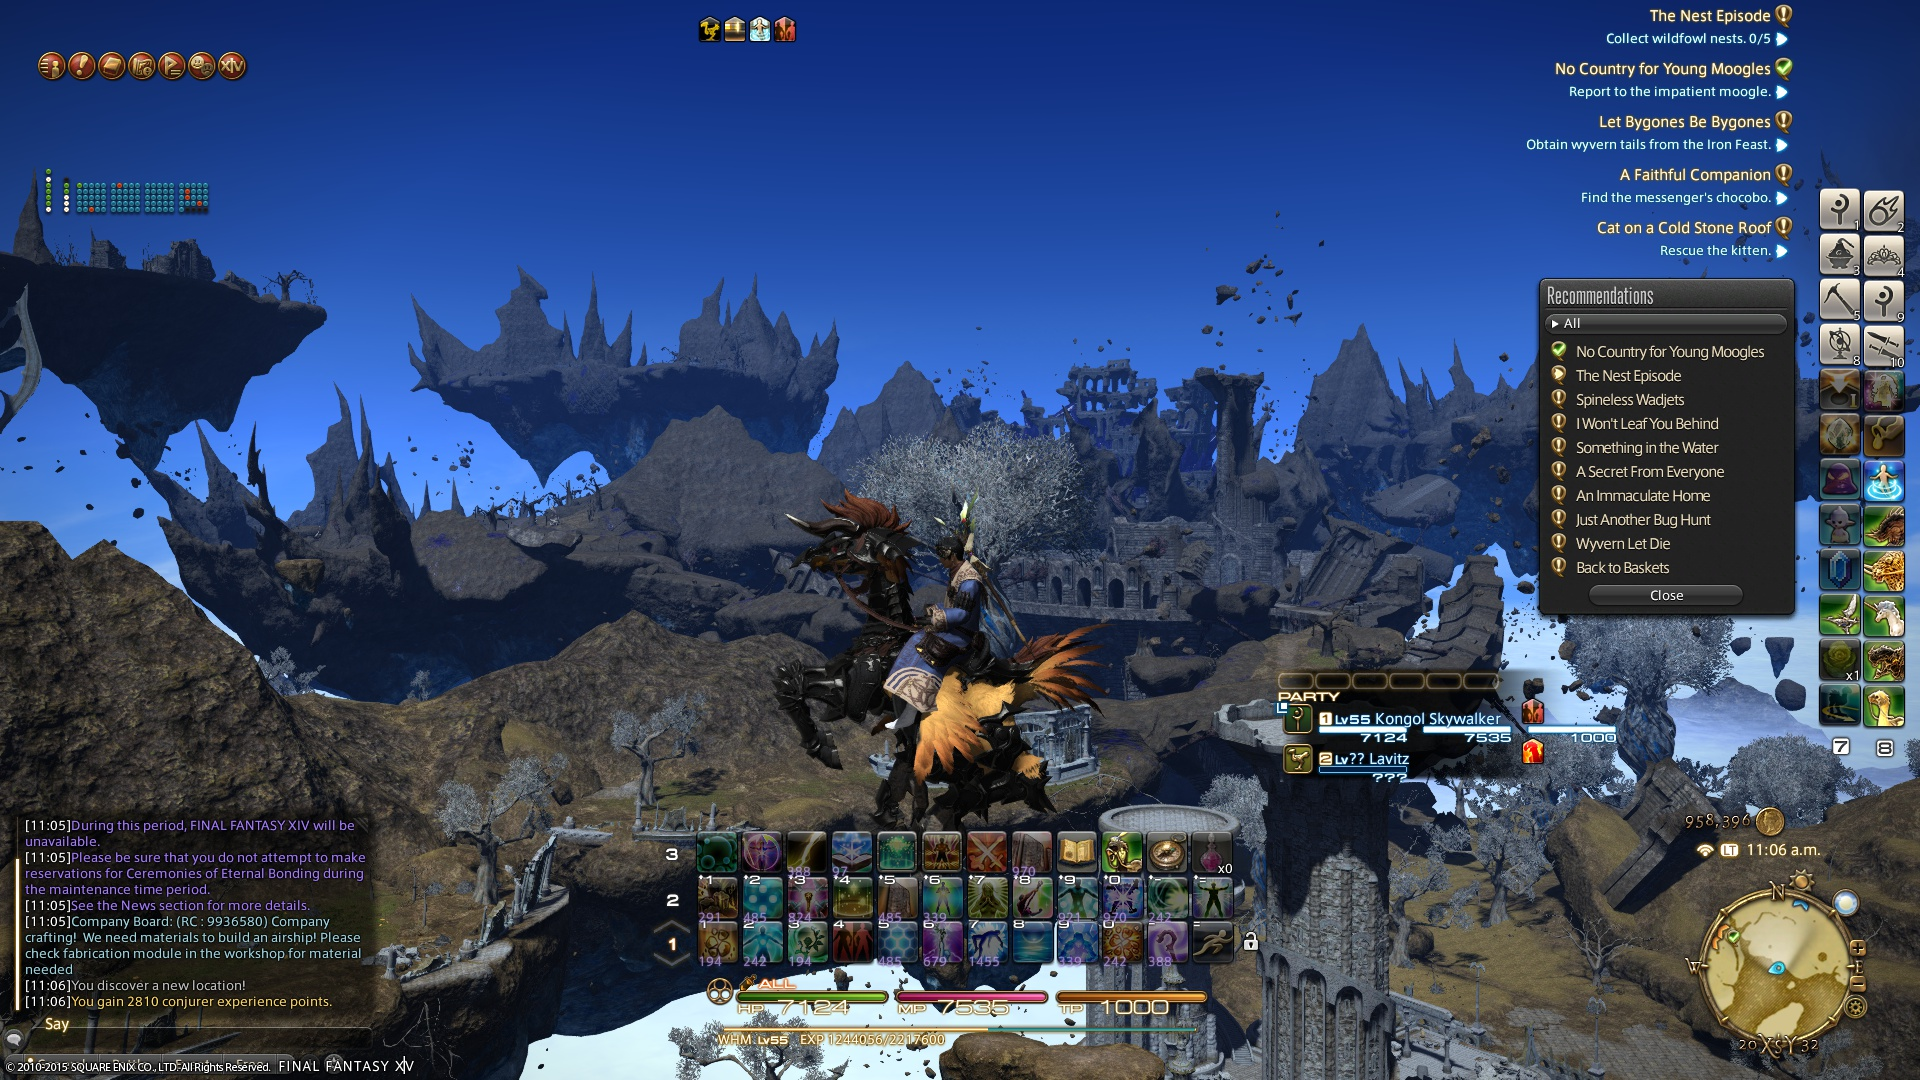 Final Fantasy XIV Heavensward Guide How to Make a Regular Chocobo Fly